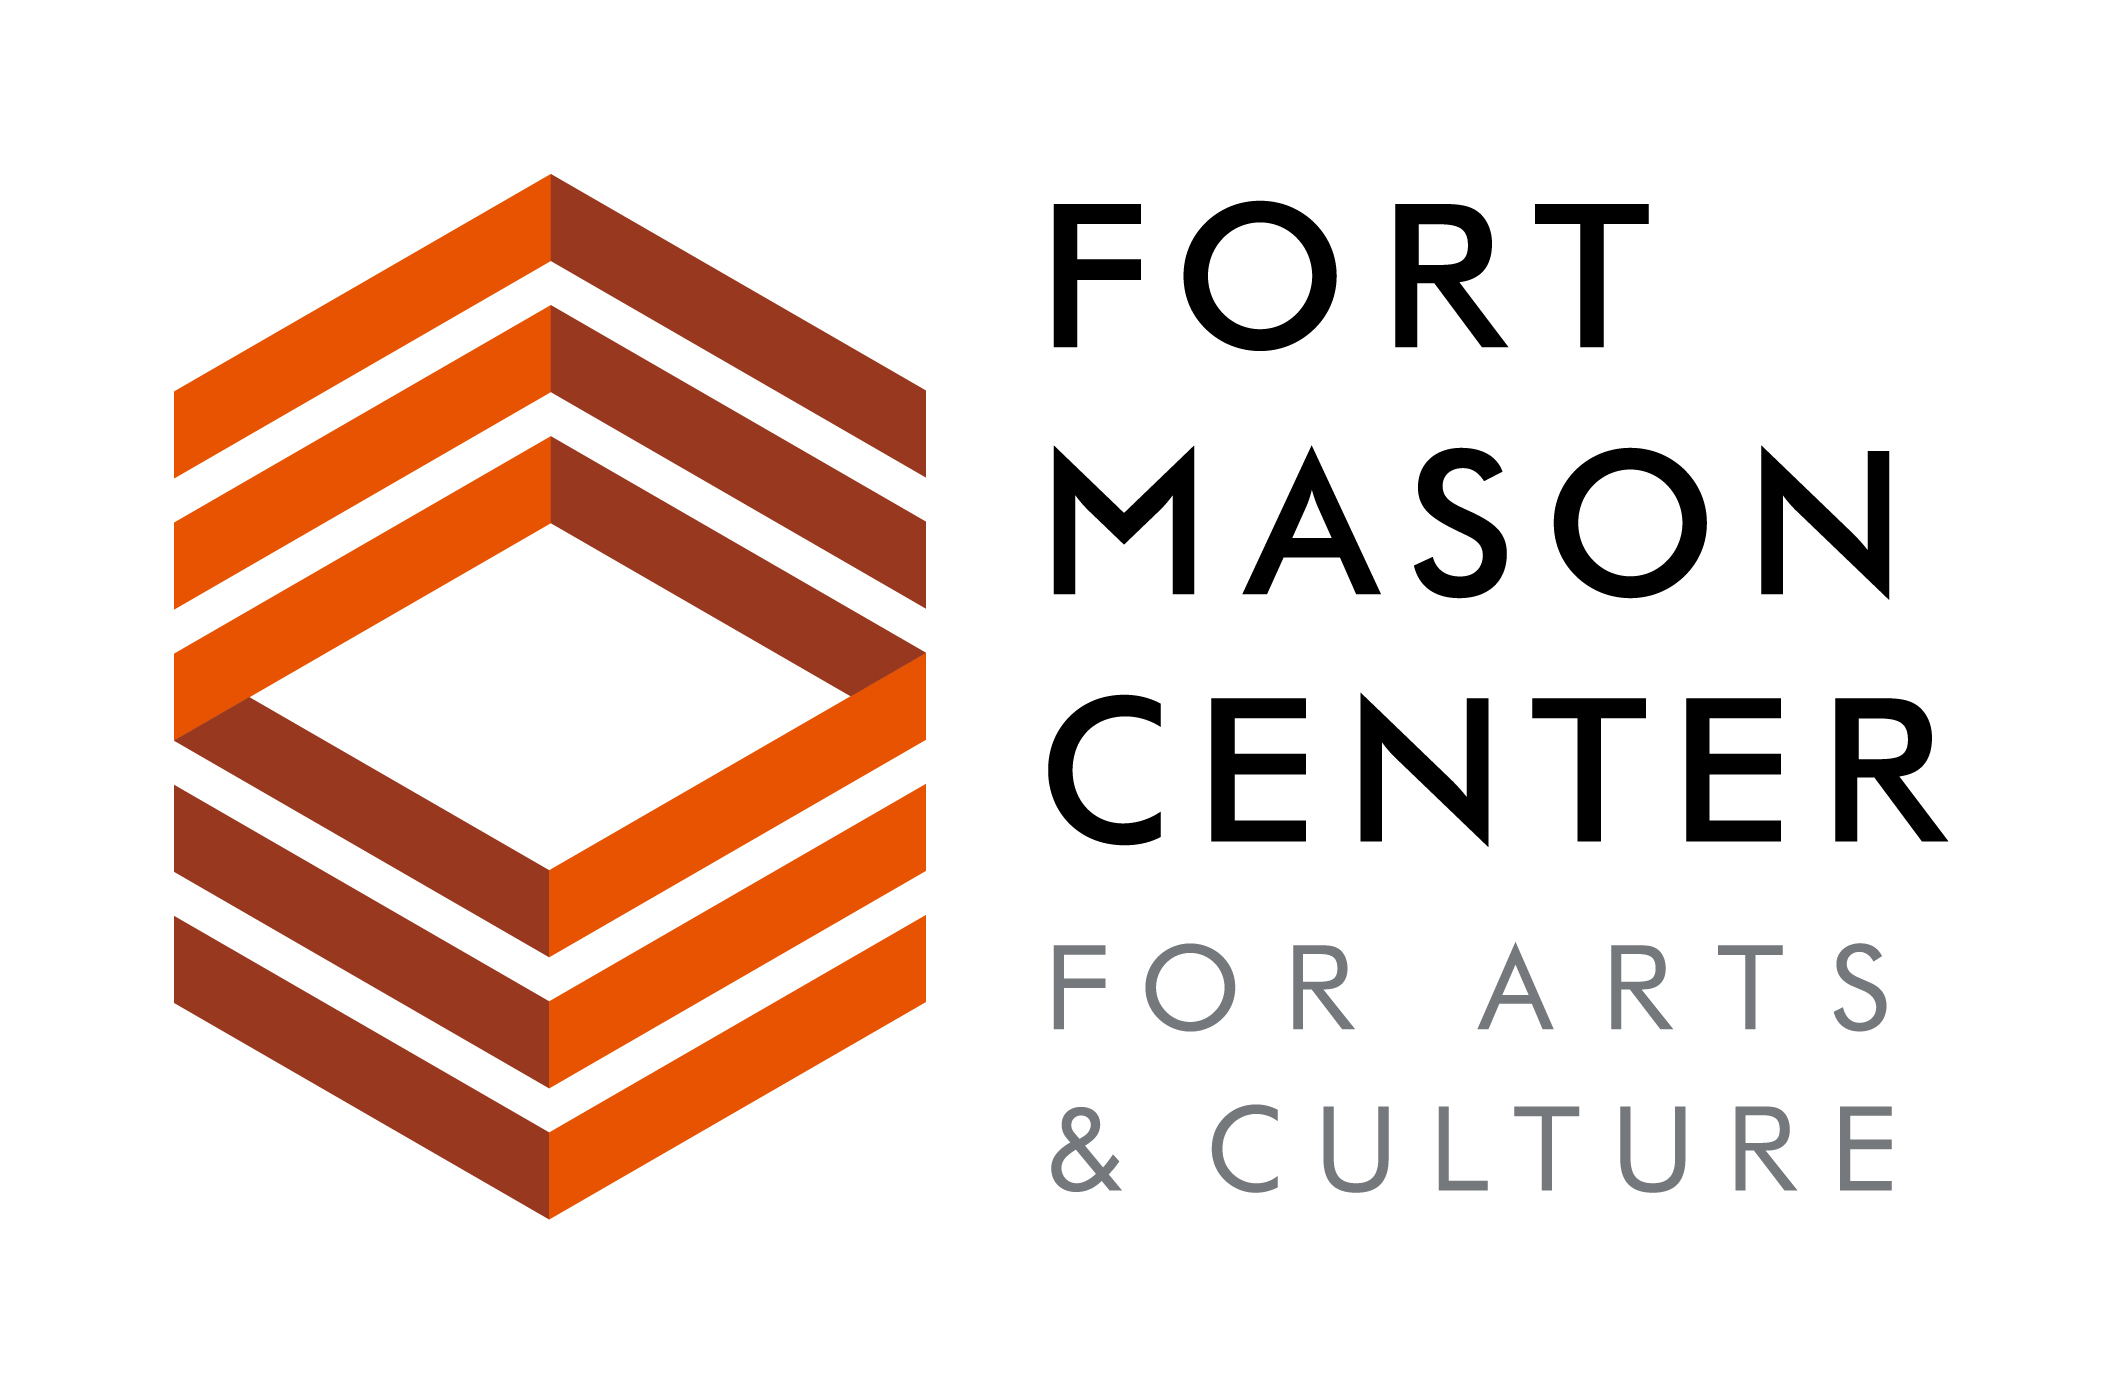 Fort Mason Center for Arts & Culture